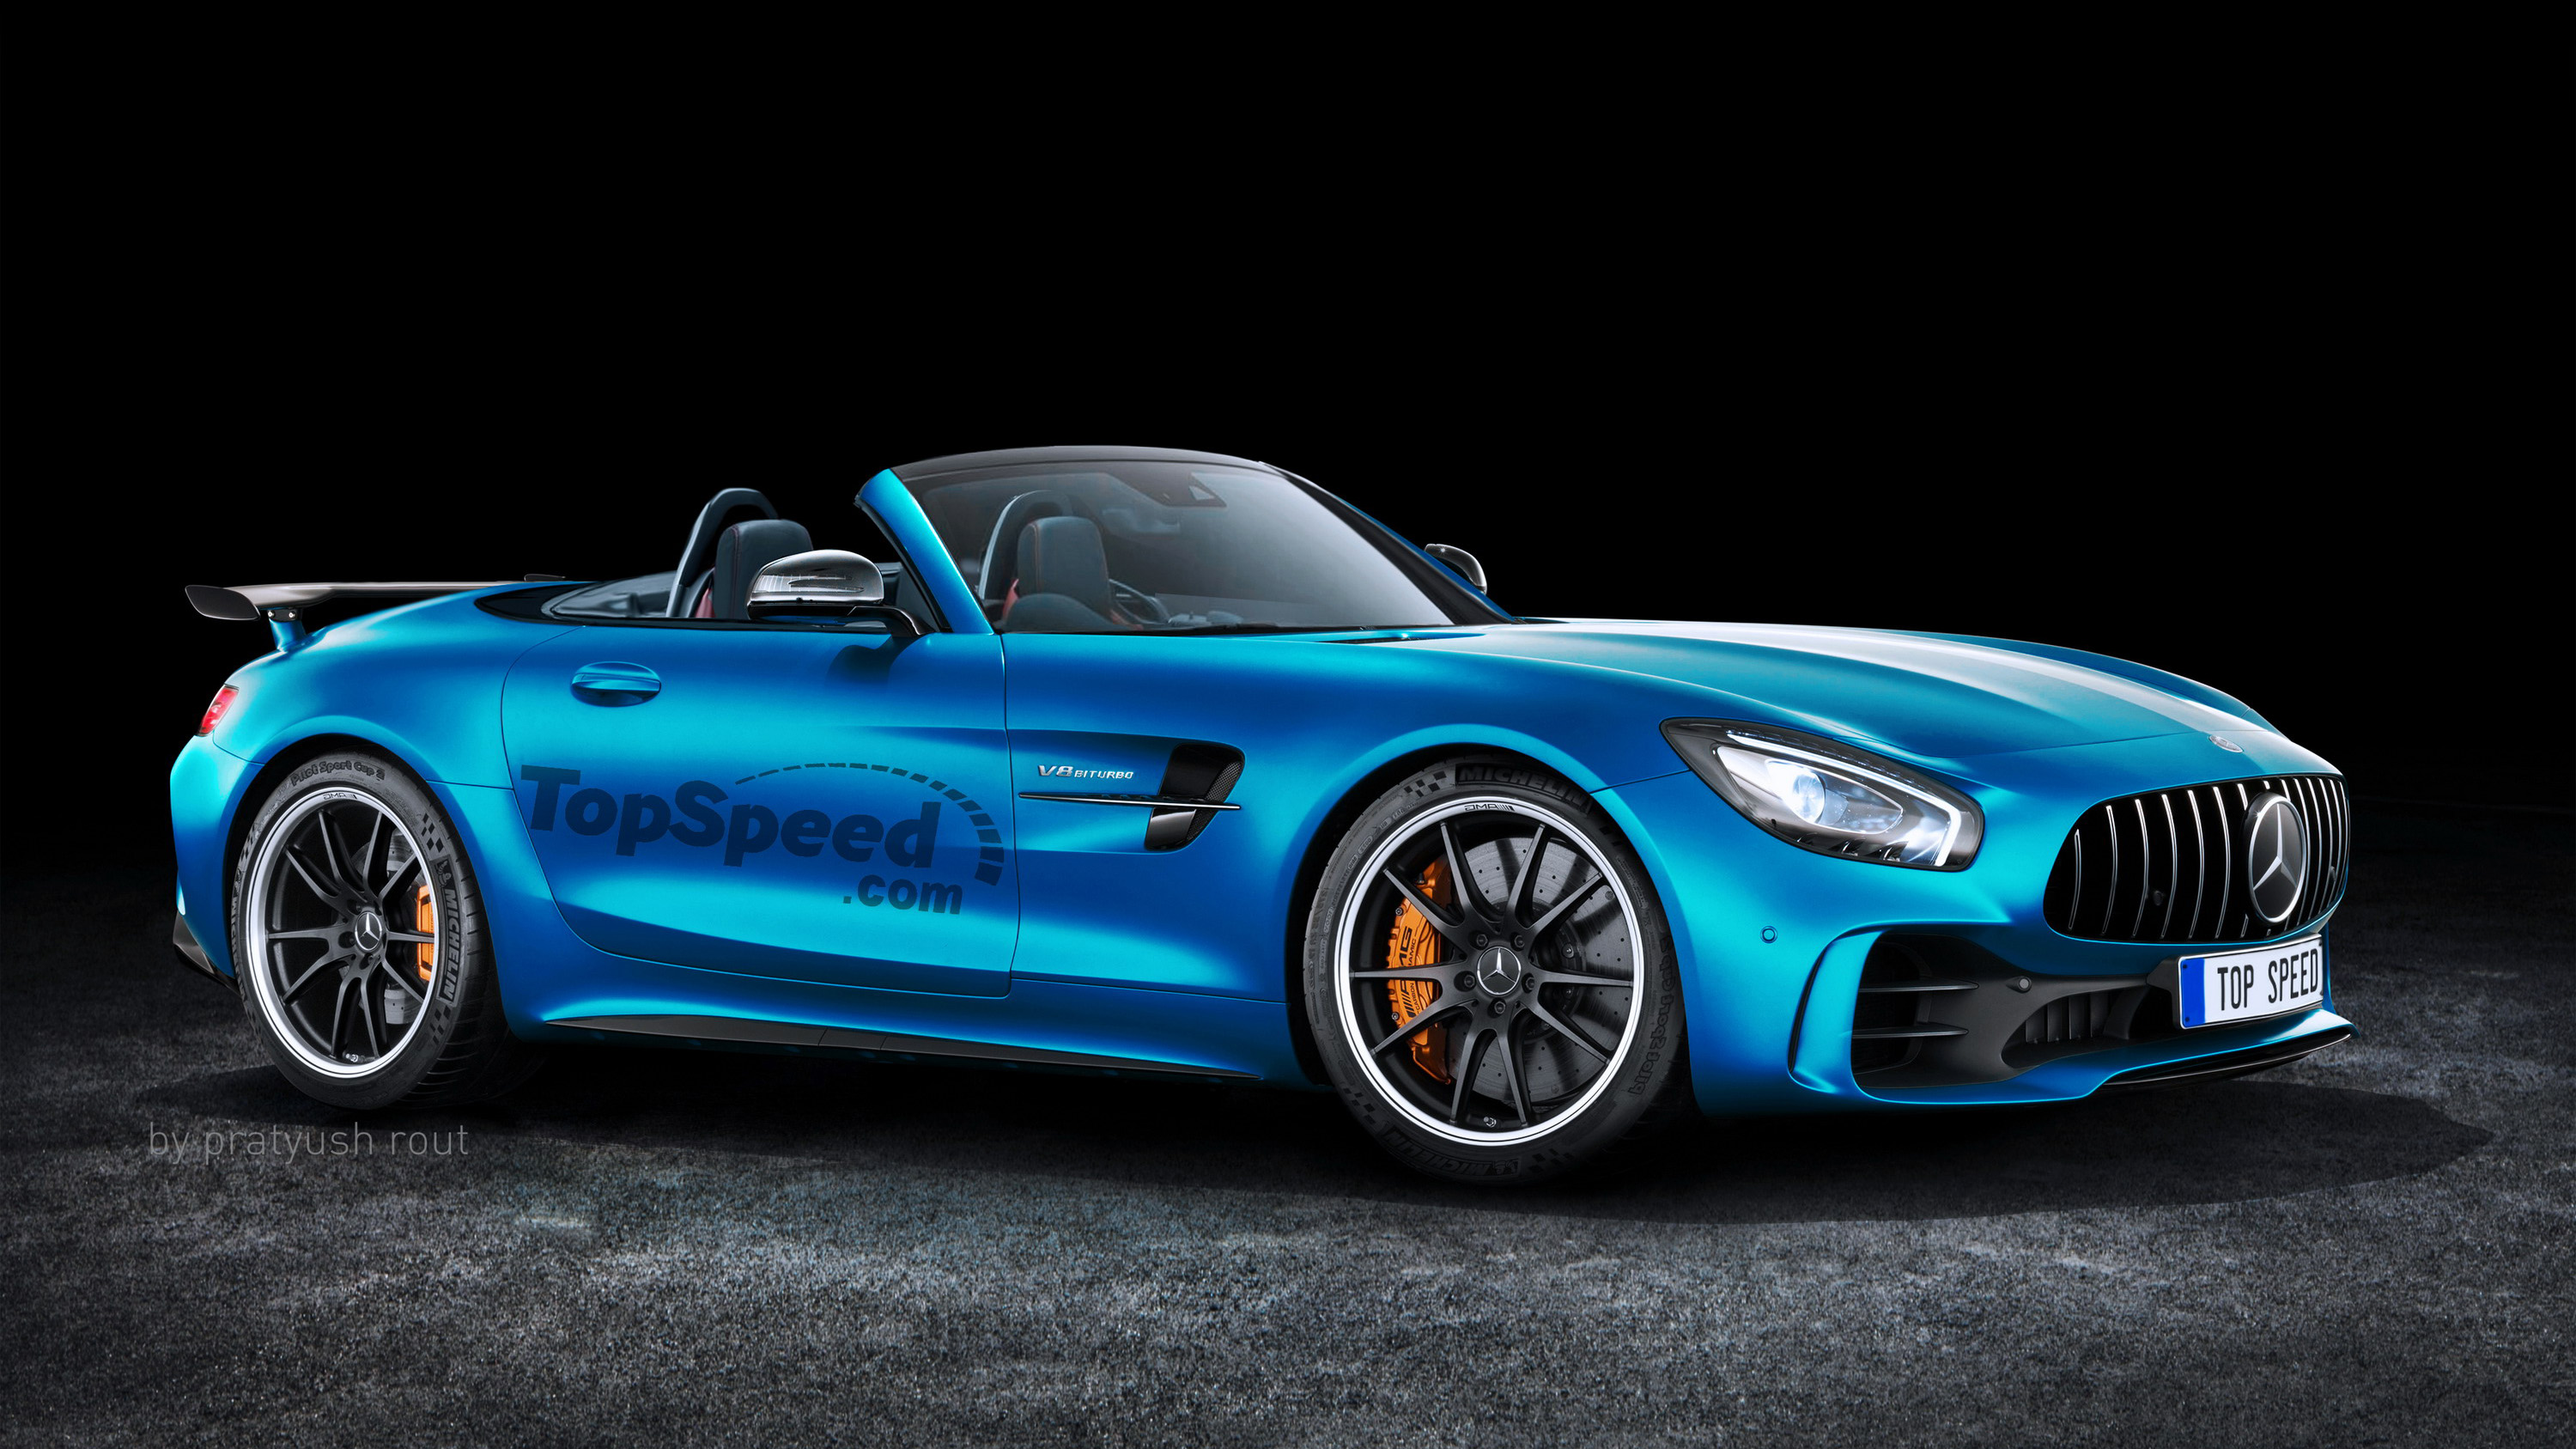 2019 mercedes amg gt r roadster top speed. Black Bedroom Furniture Sets. Home Design Ideas